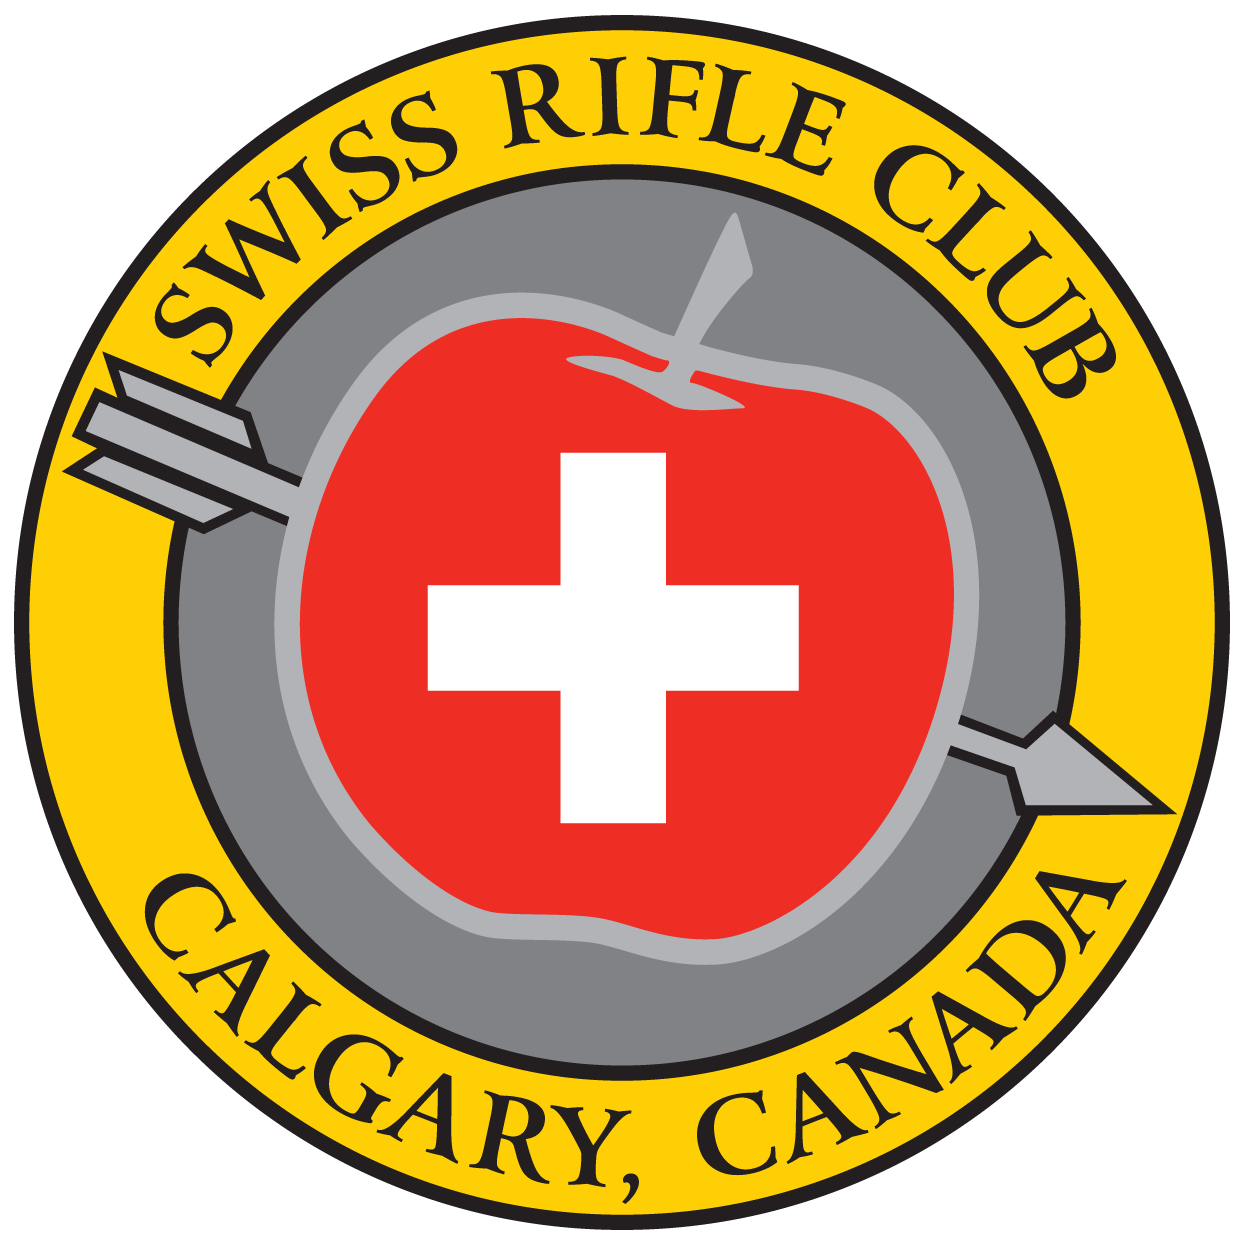 Swiss Rifle Club Calgary